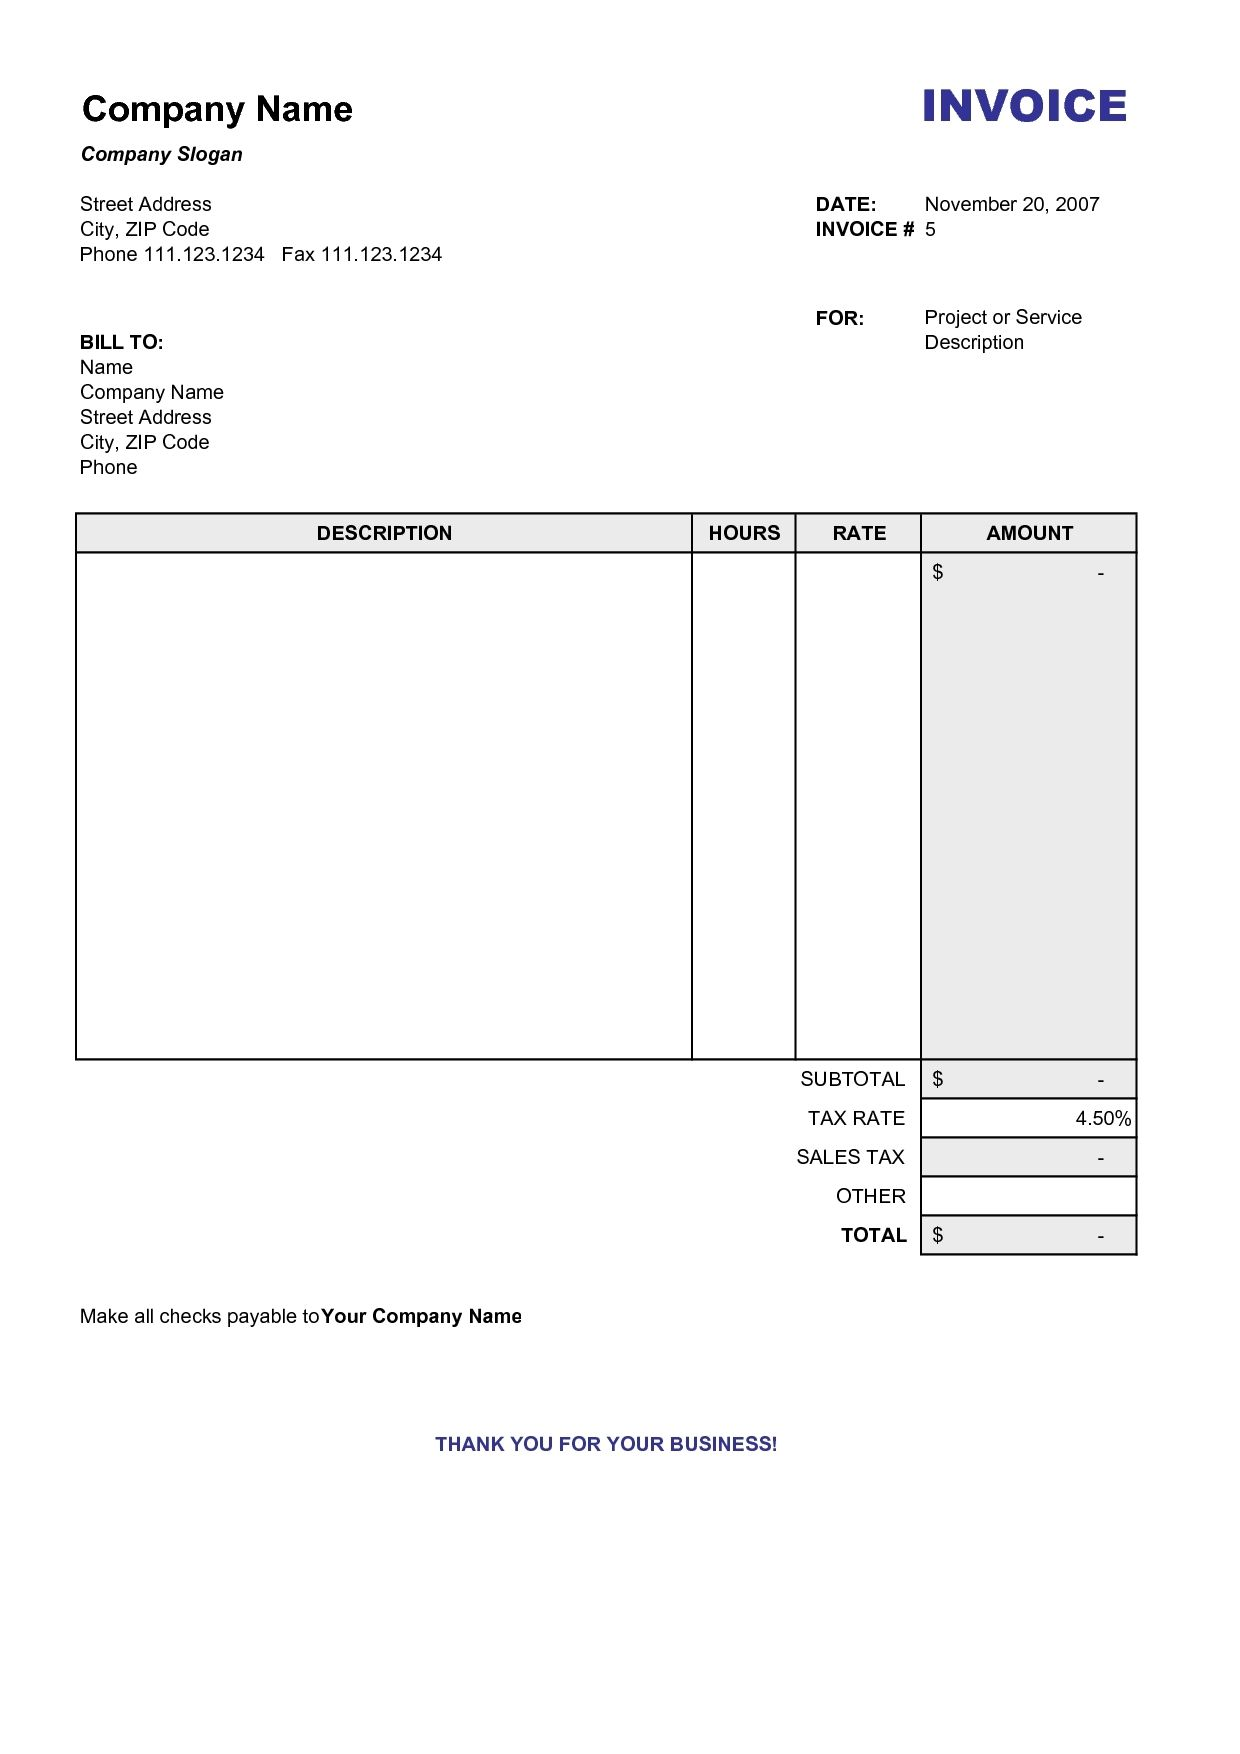 Copy Of A Blank Invoice Invoice Template Free Copy Of Blank - Invoice creator free download for service business